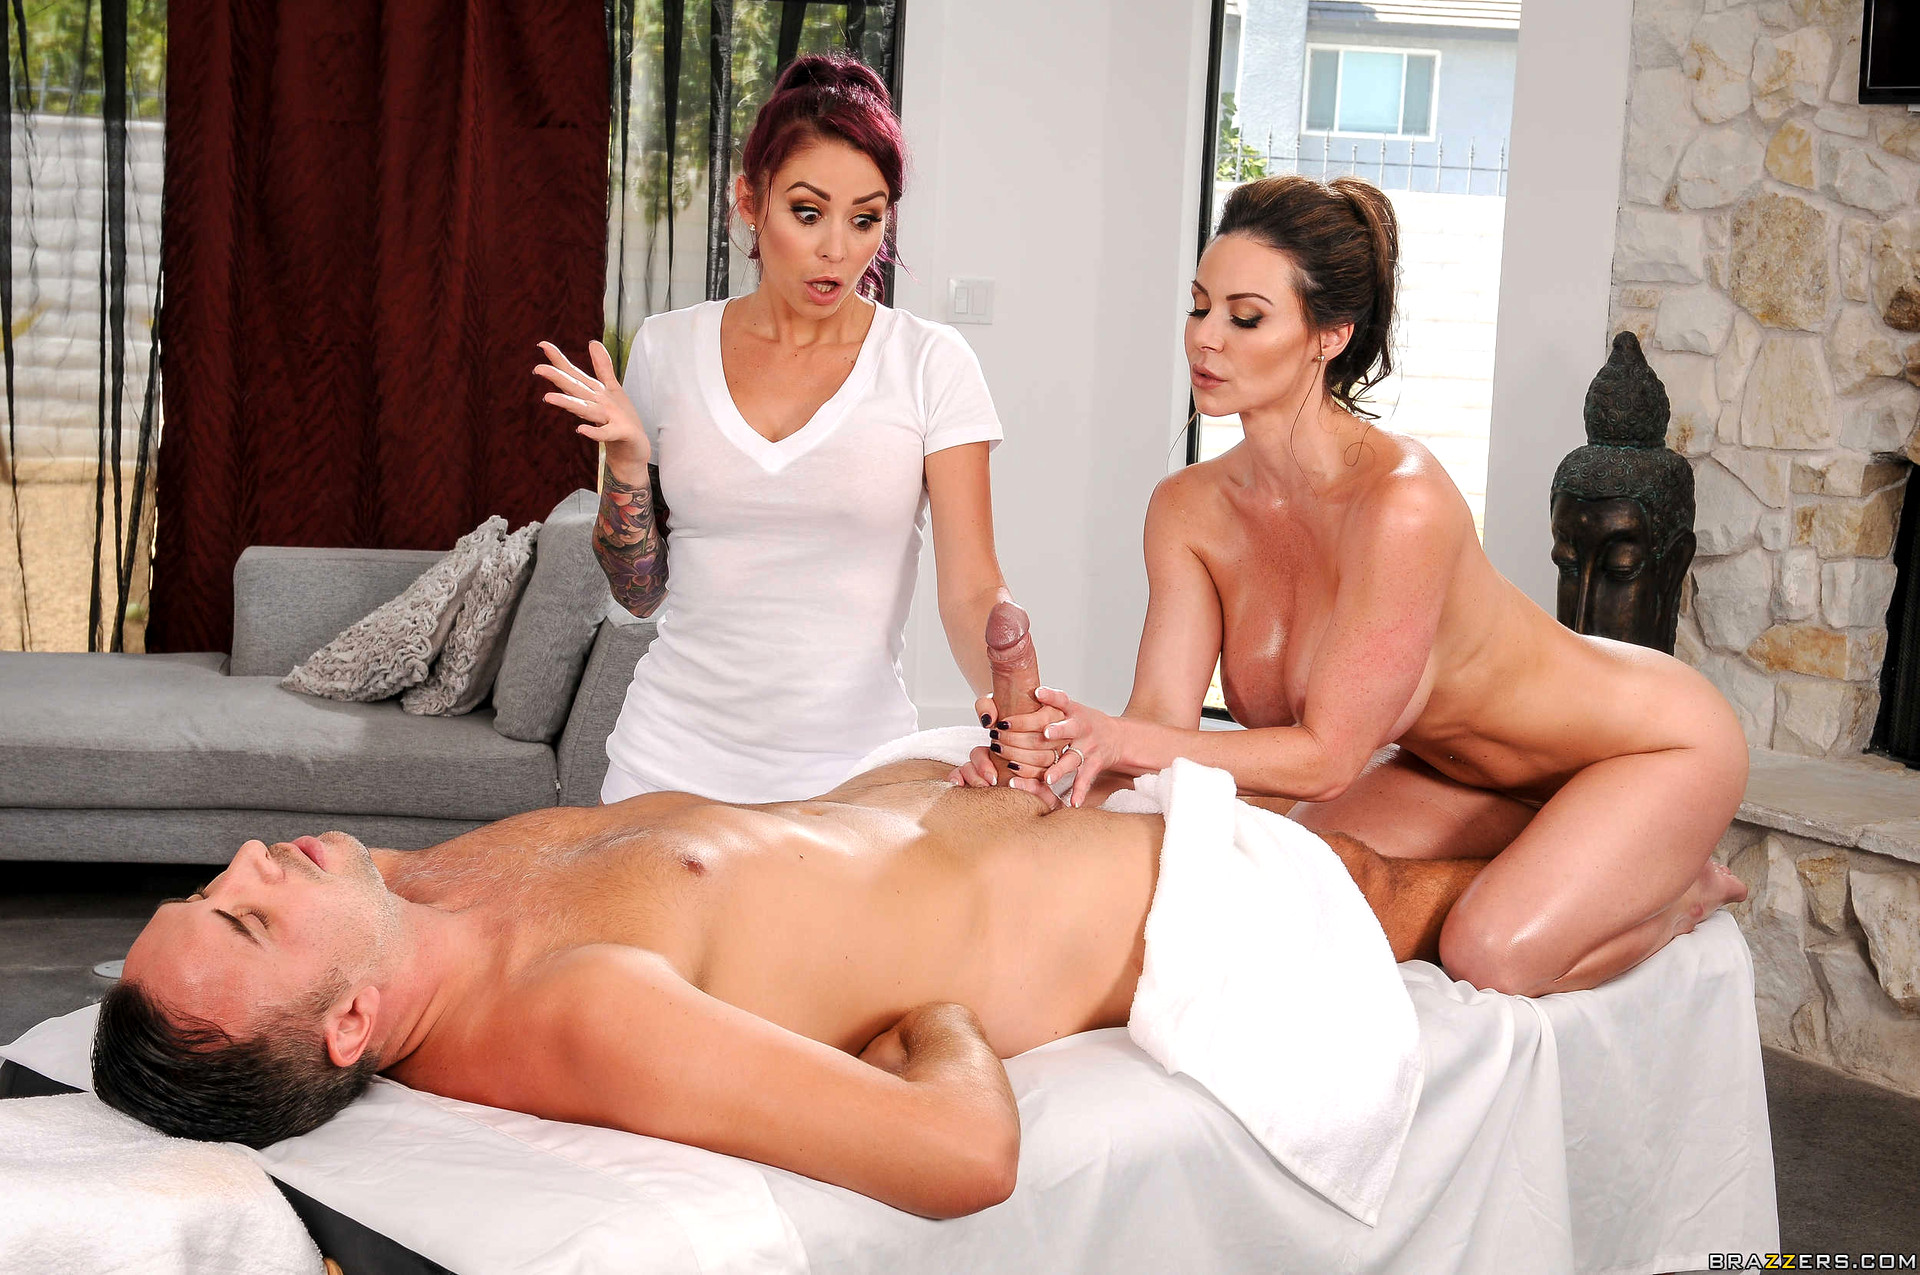 image Brazzers monique alexander real wife stories